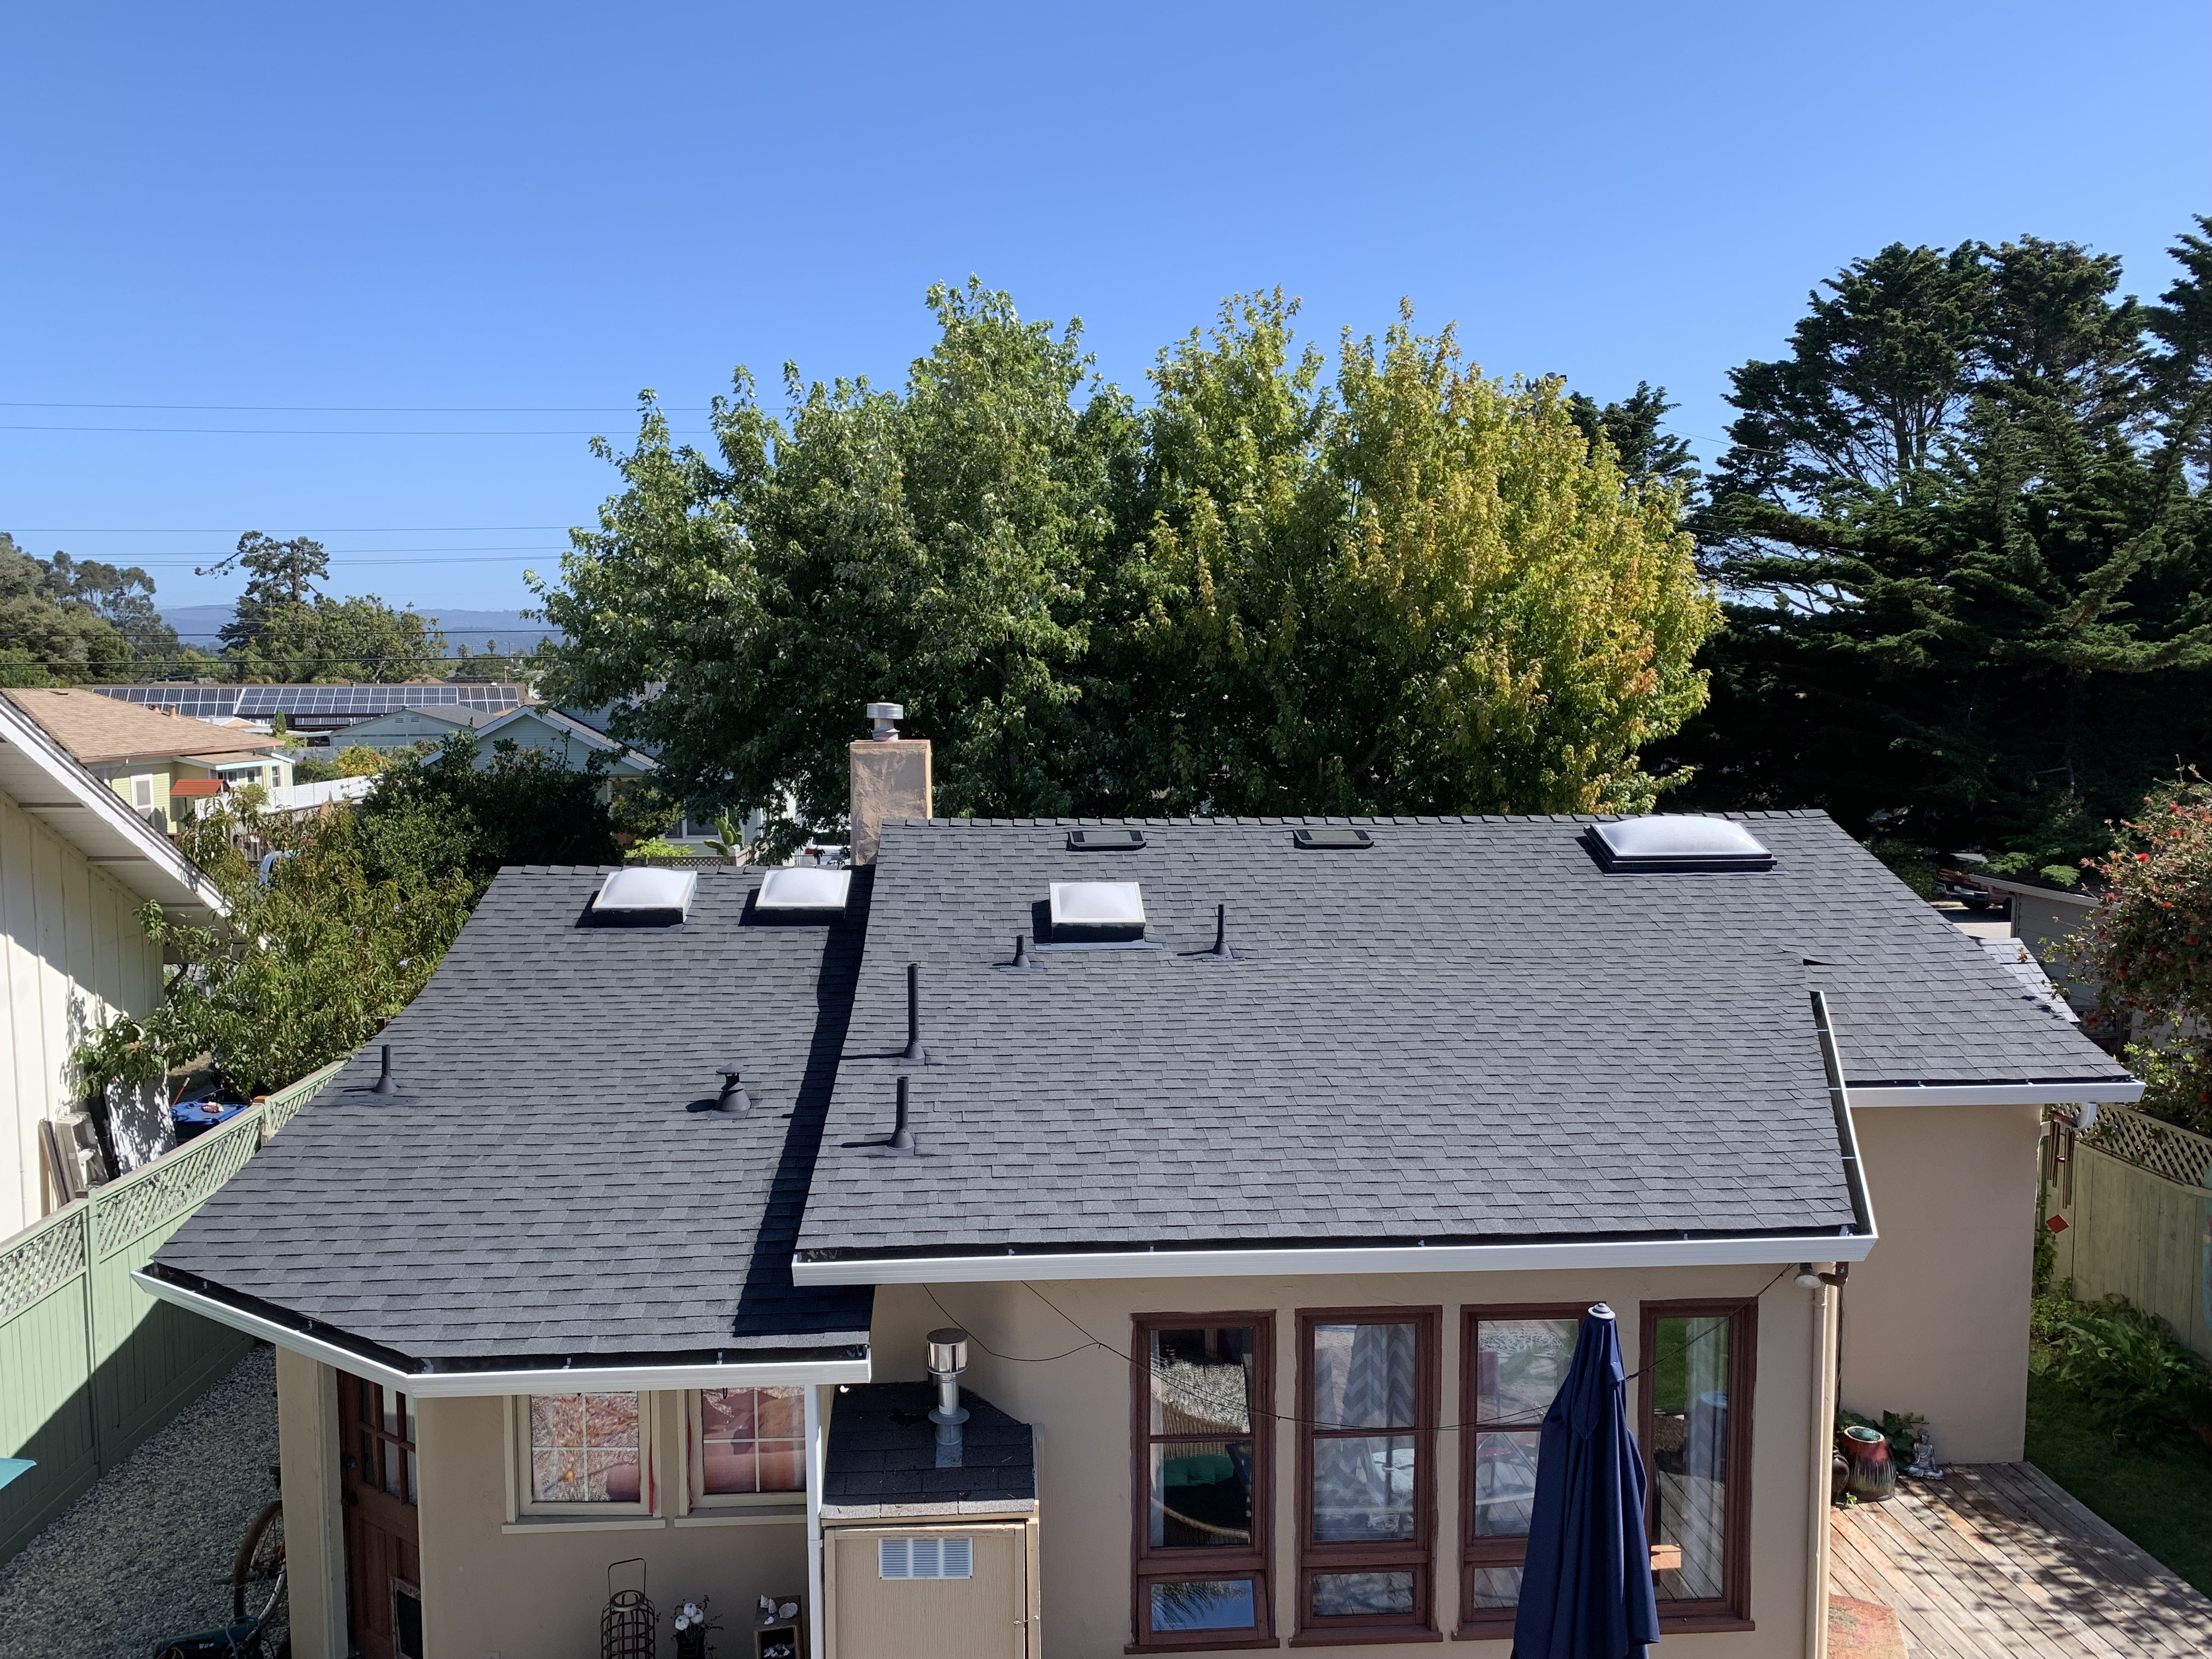 Black Shingle Roof on Residential Home in Pleasure Point, CA near Santa Cruz